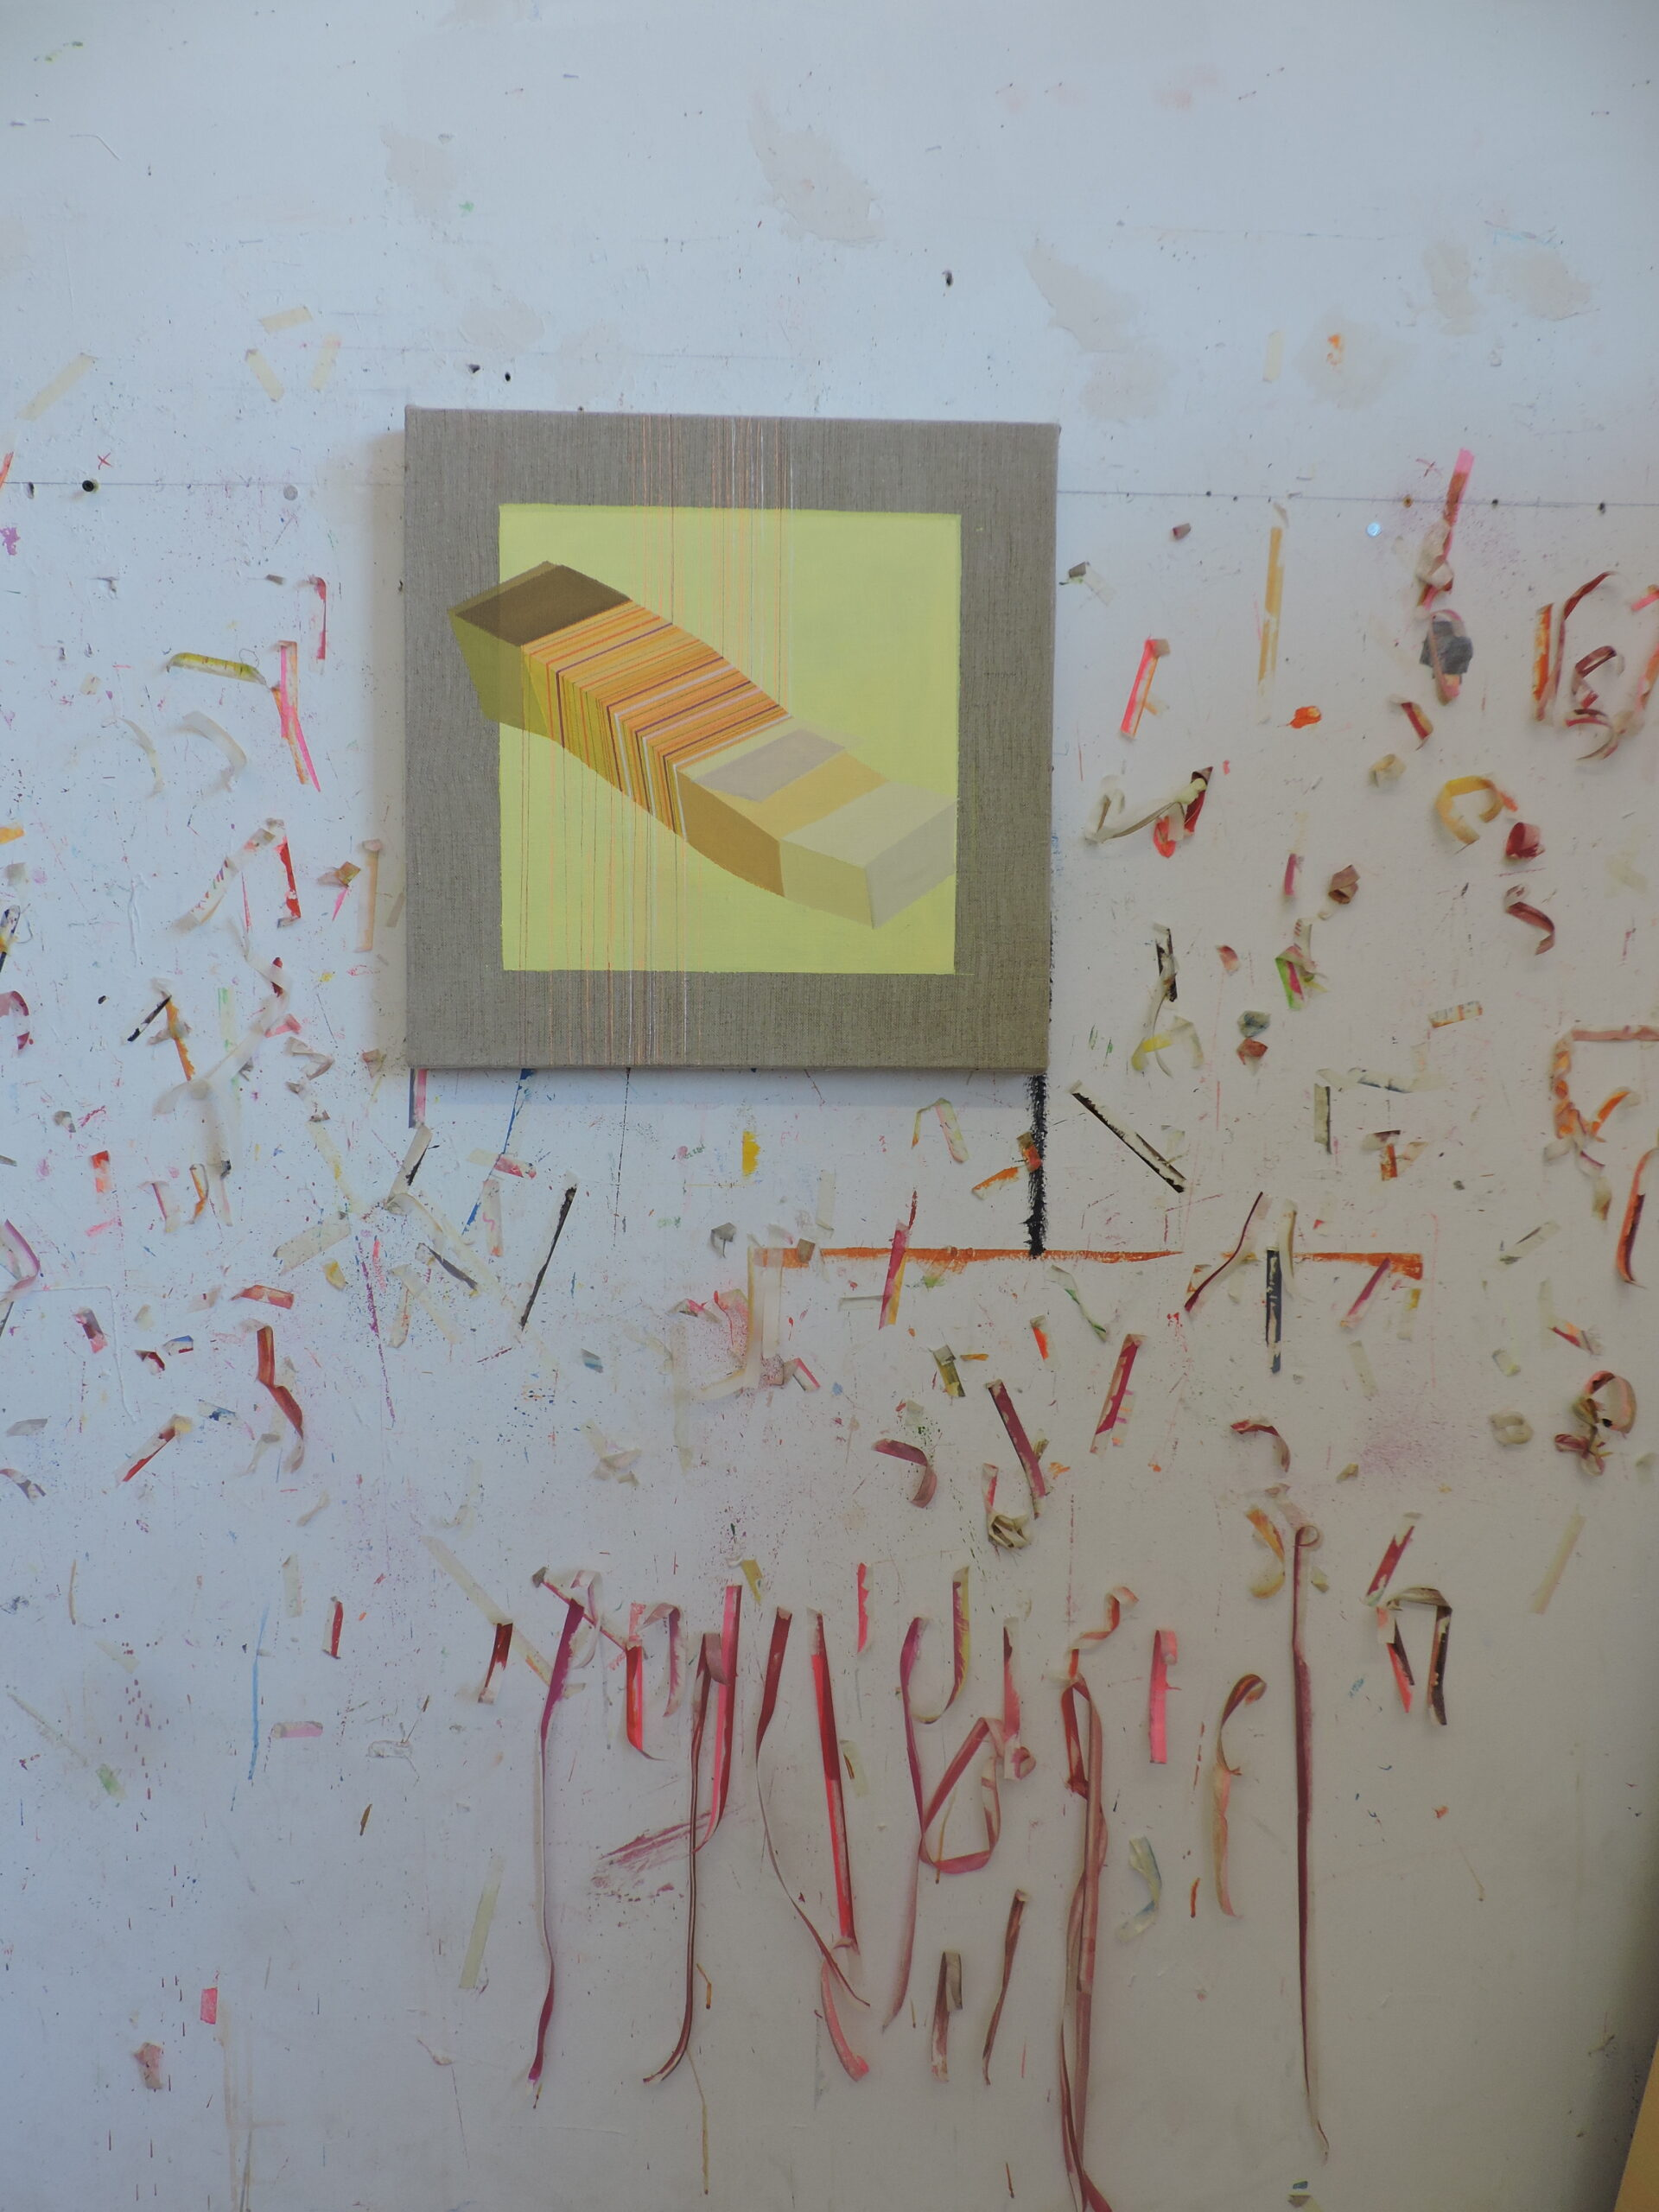 painting in progress, studio 2020 by Antonietta Grassi.